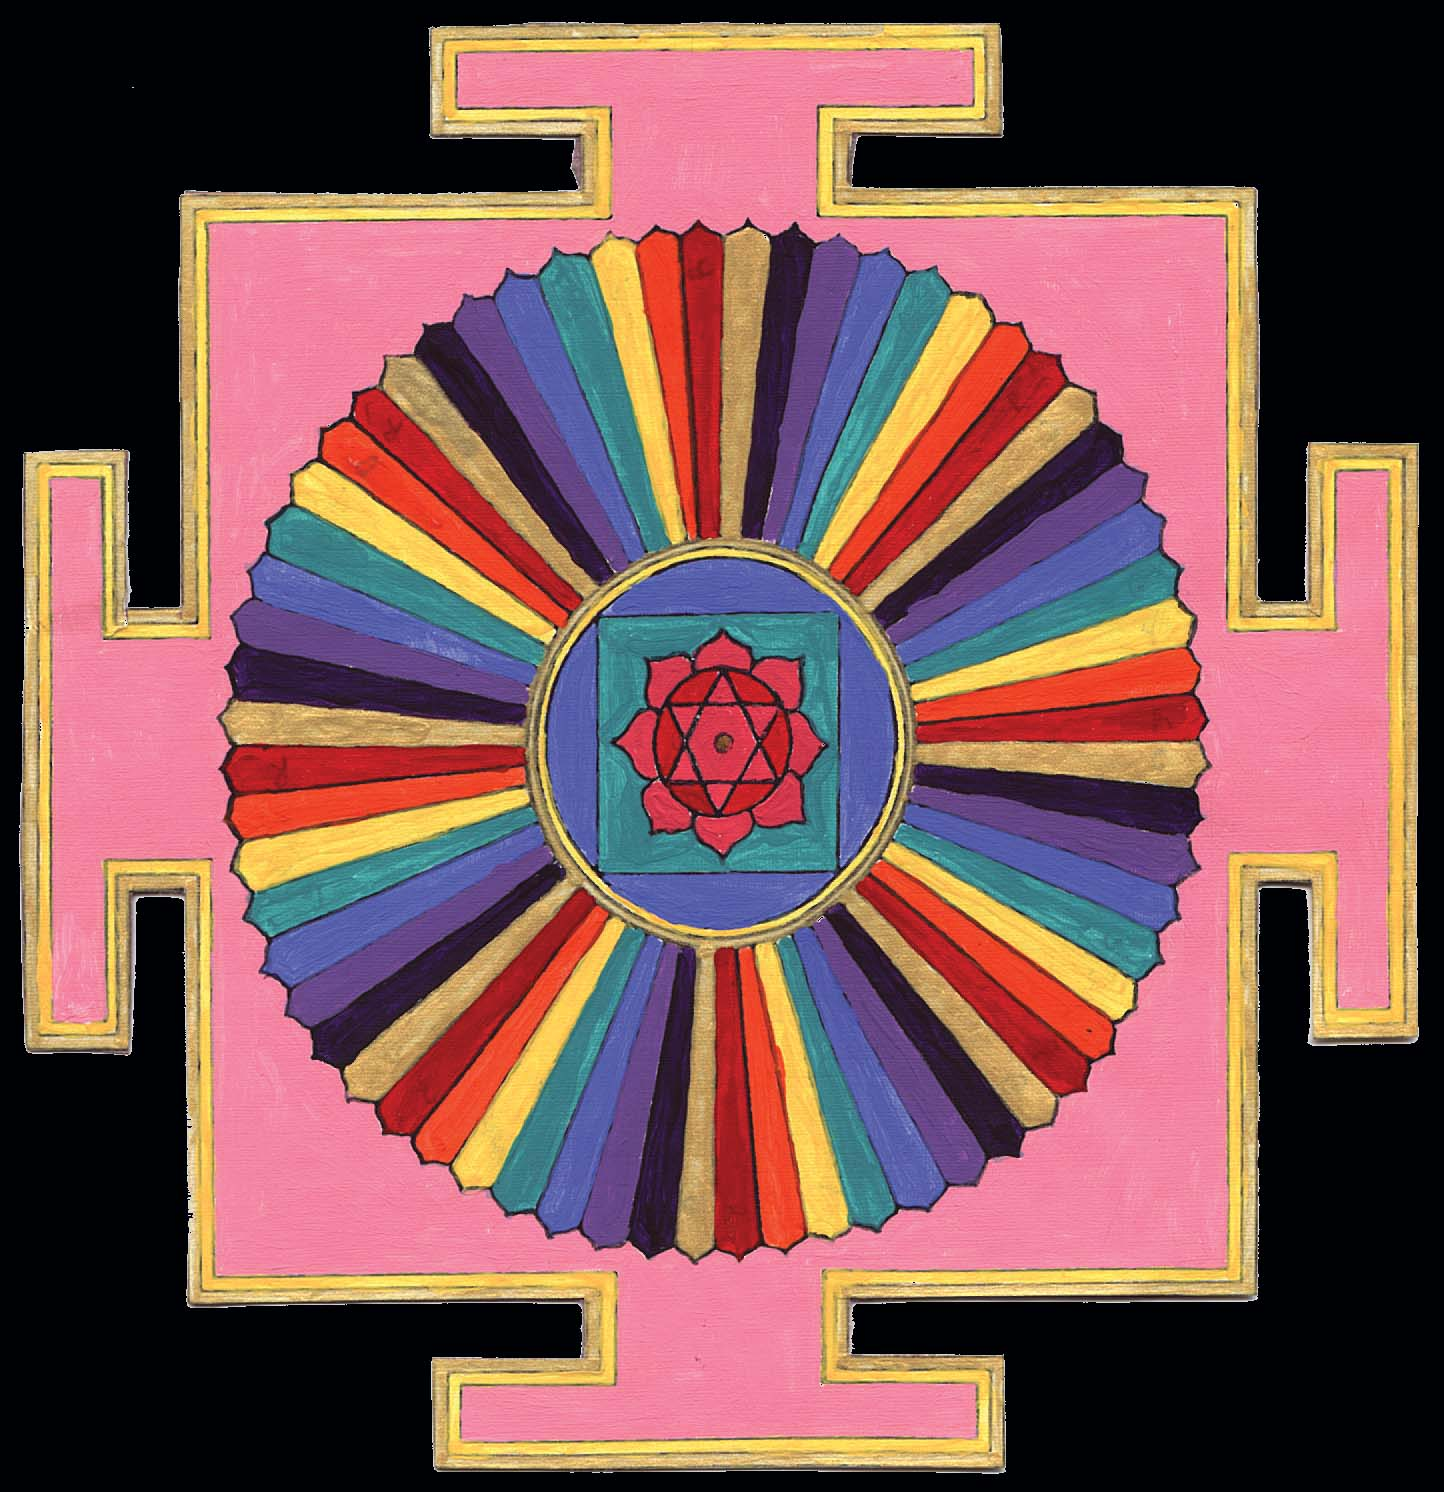 Tantric Yantra - If you look in the center you'll see a triangle with a dot in the middle - this is the sacred image of where the energies of the first and second chakras meet. It is said that sleeping energy lies here dormant waiting to be woken and to rise up the spine to weave our internal masculine and feminine energies.